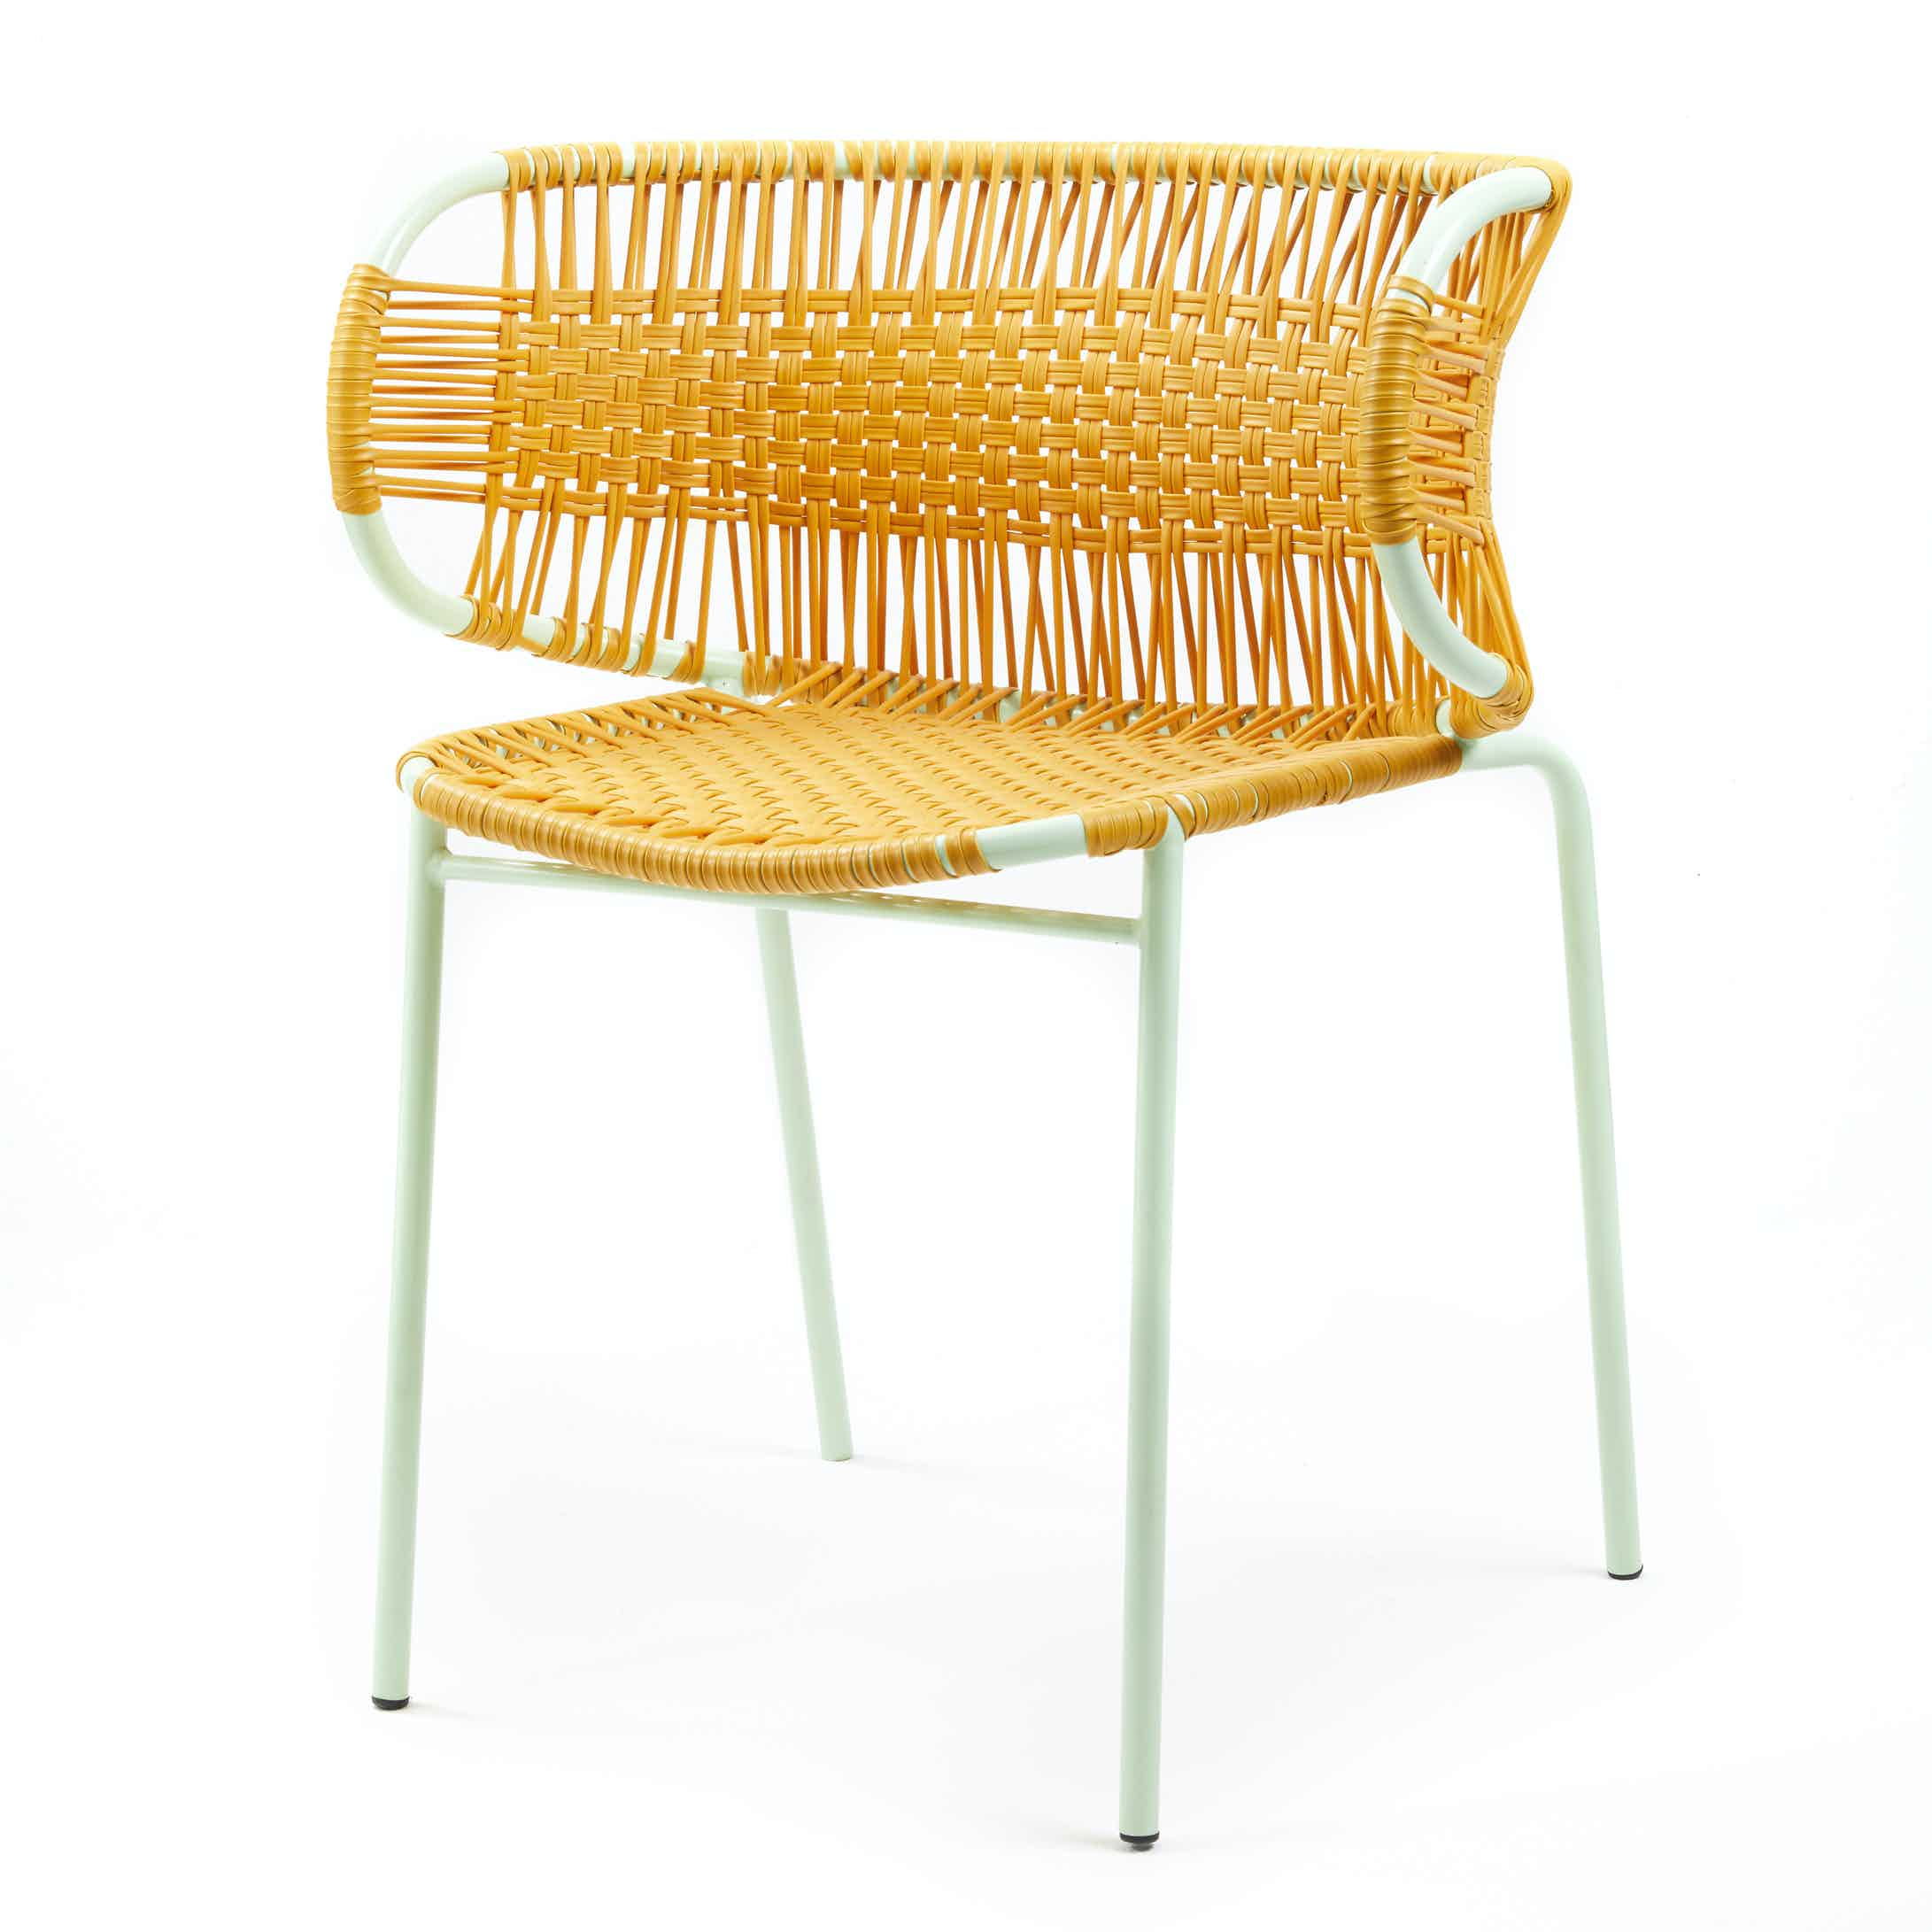 Ames furniture design cielo stacking chair with armrests yellow haute living 200720 185209